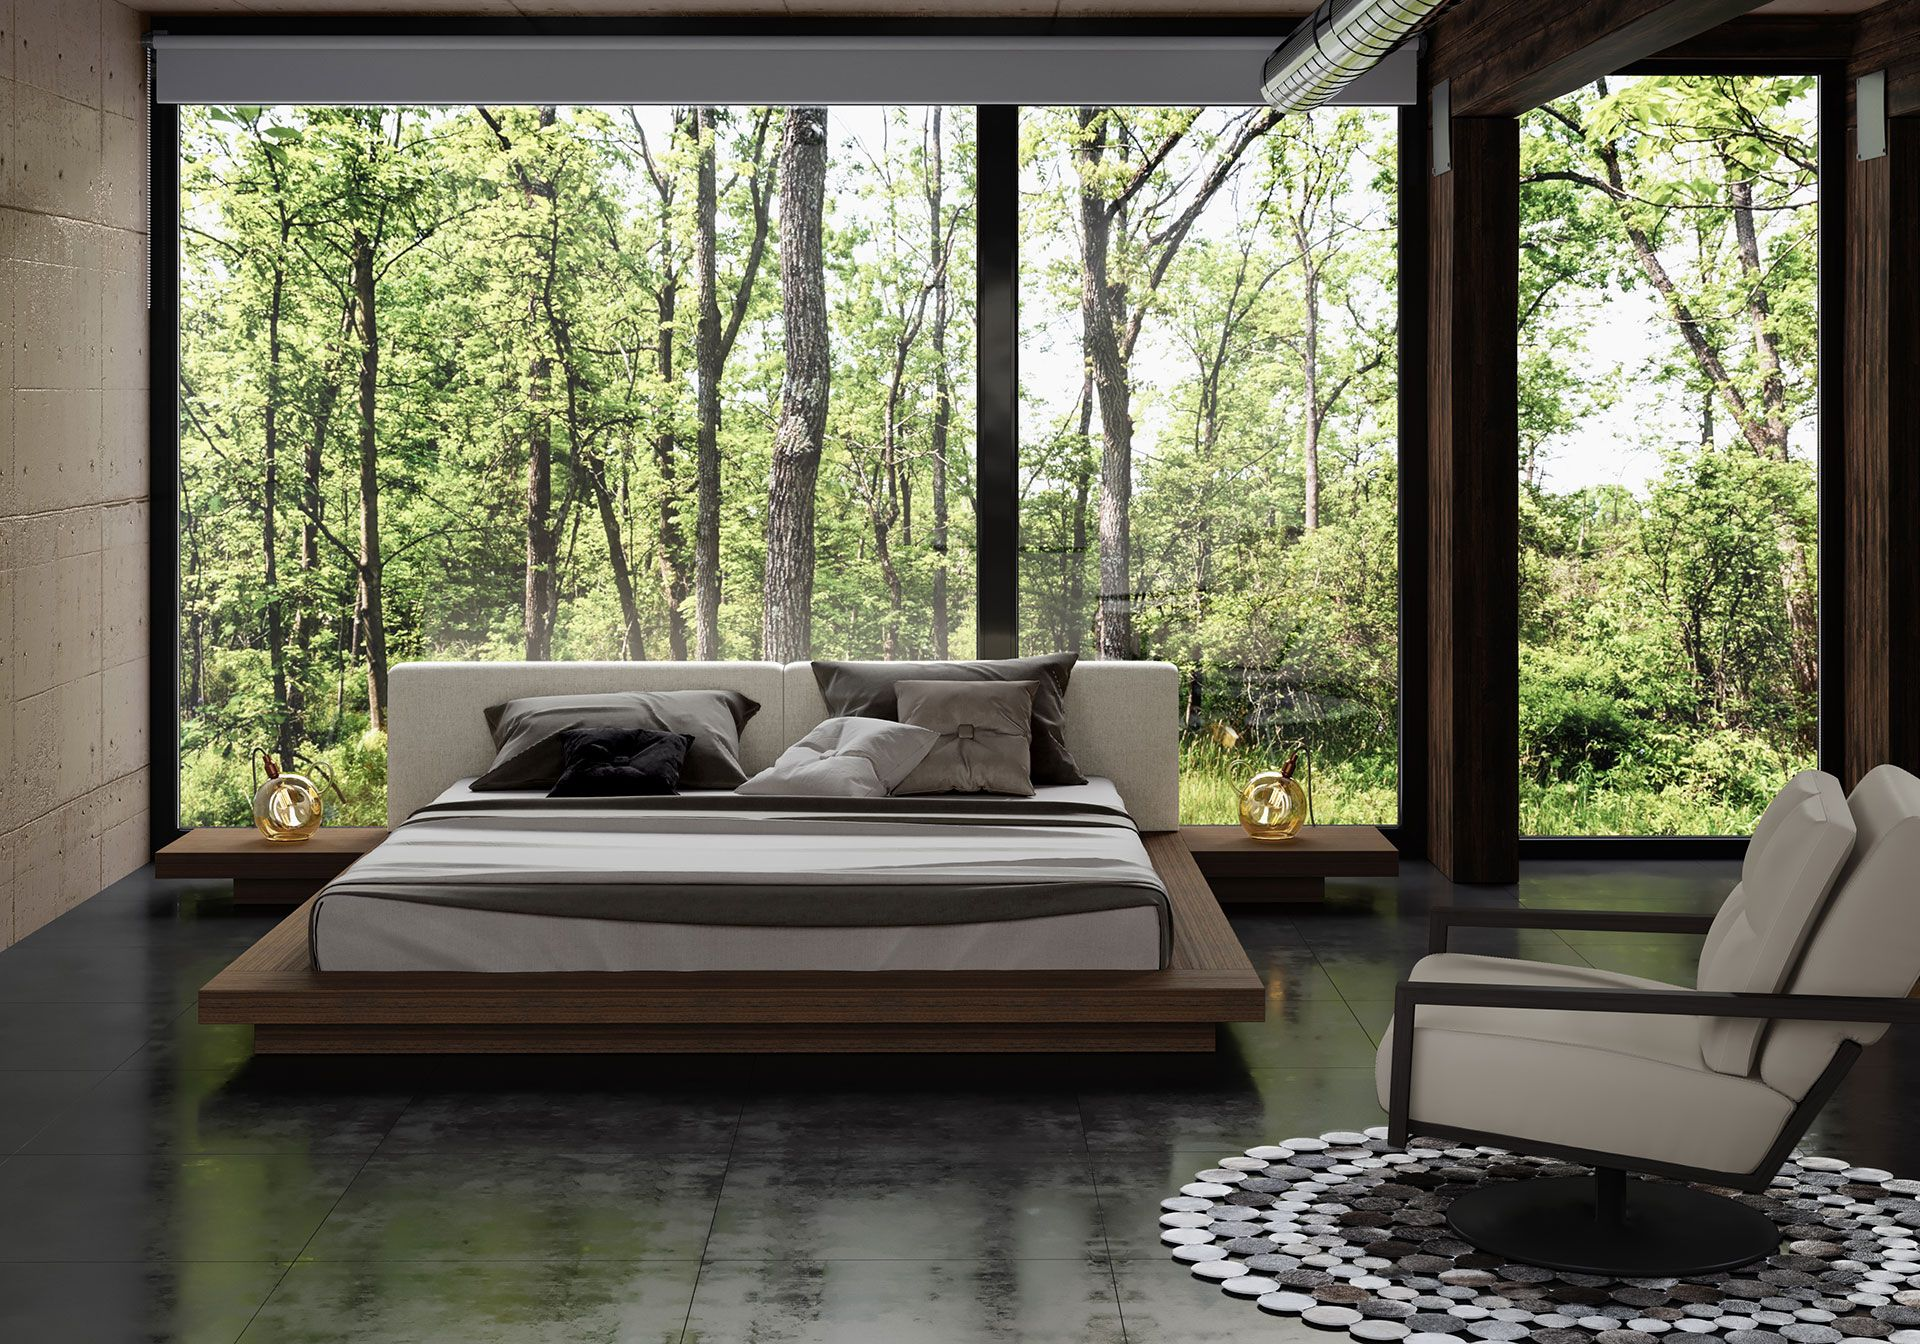 The Japanese Inspired Worth Platform Bed Features A Low Profile Hardwood Frame With Matching Symmet Upholstered Platform Bed Cal King Bedding Bed Linens Luxury